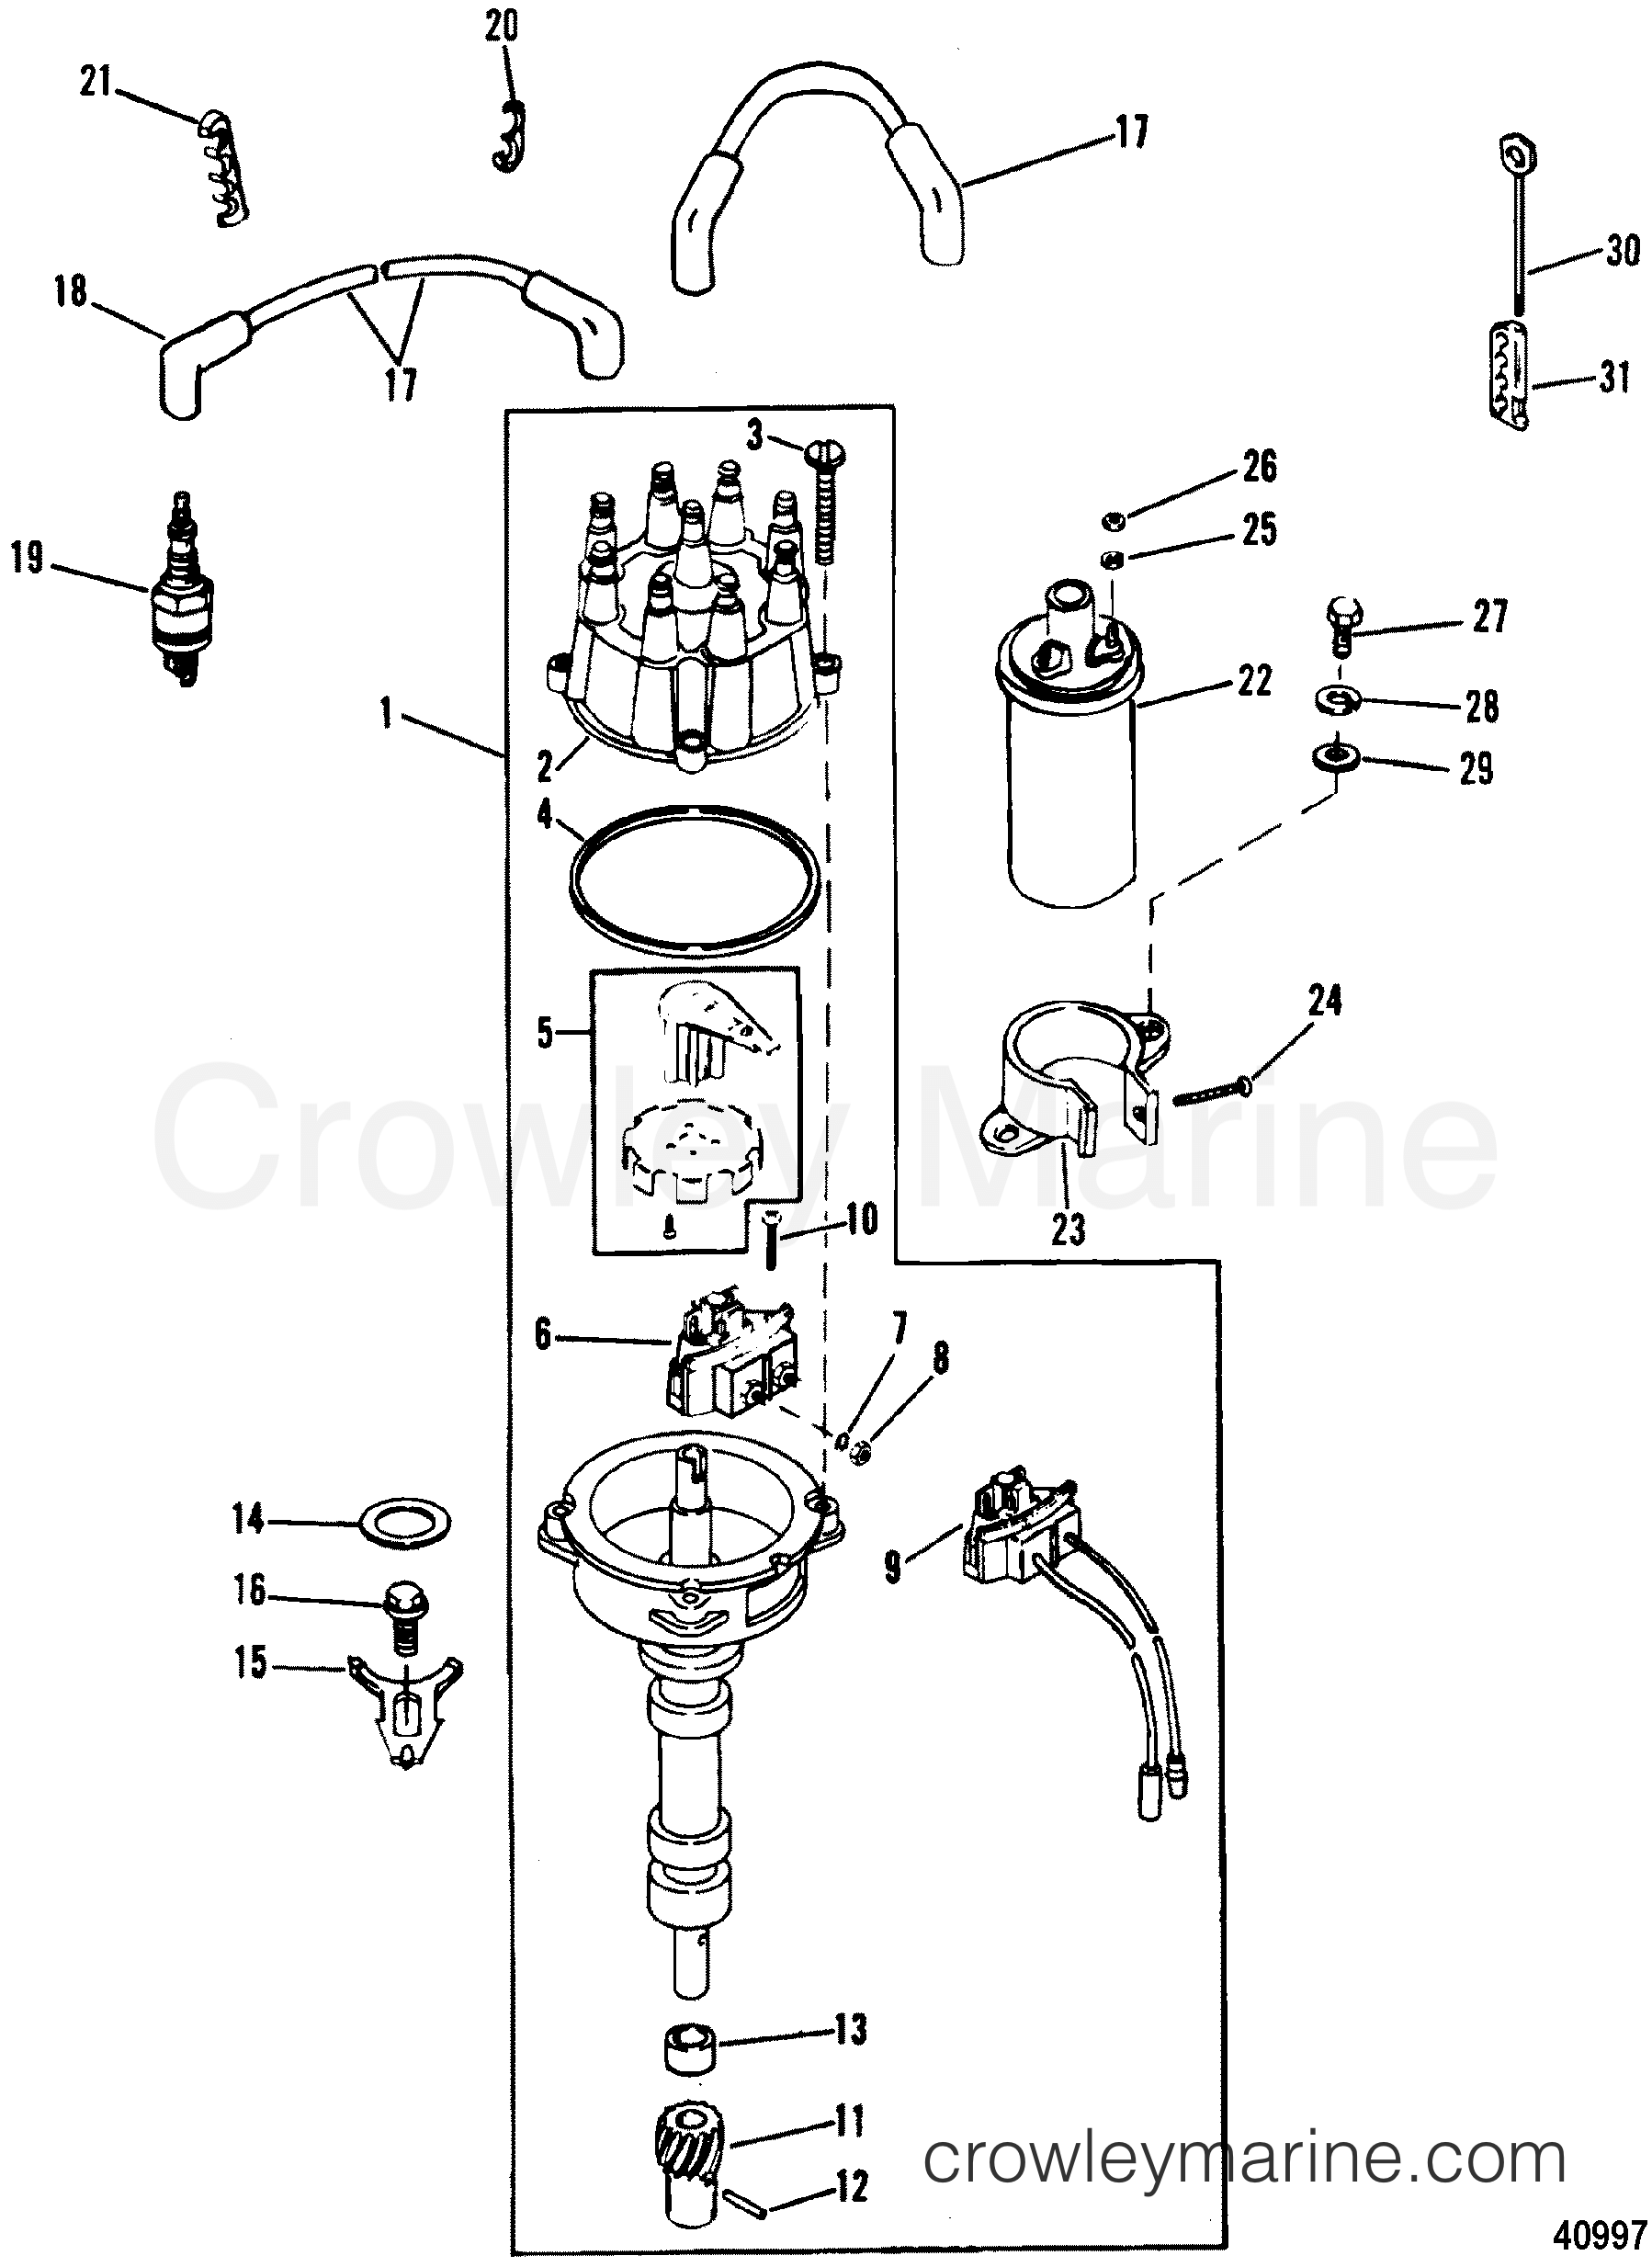 PdMfuIB9 distributor & ignition components(thunderbolt iv ignition) 1988 mercruiser thunderbolt 4 wiring diagram at crackthecode.co